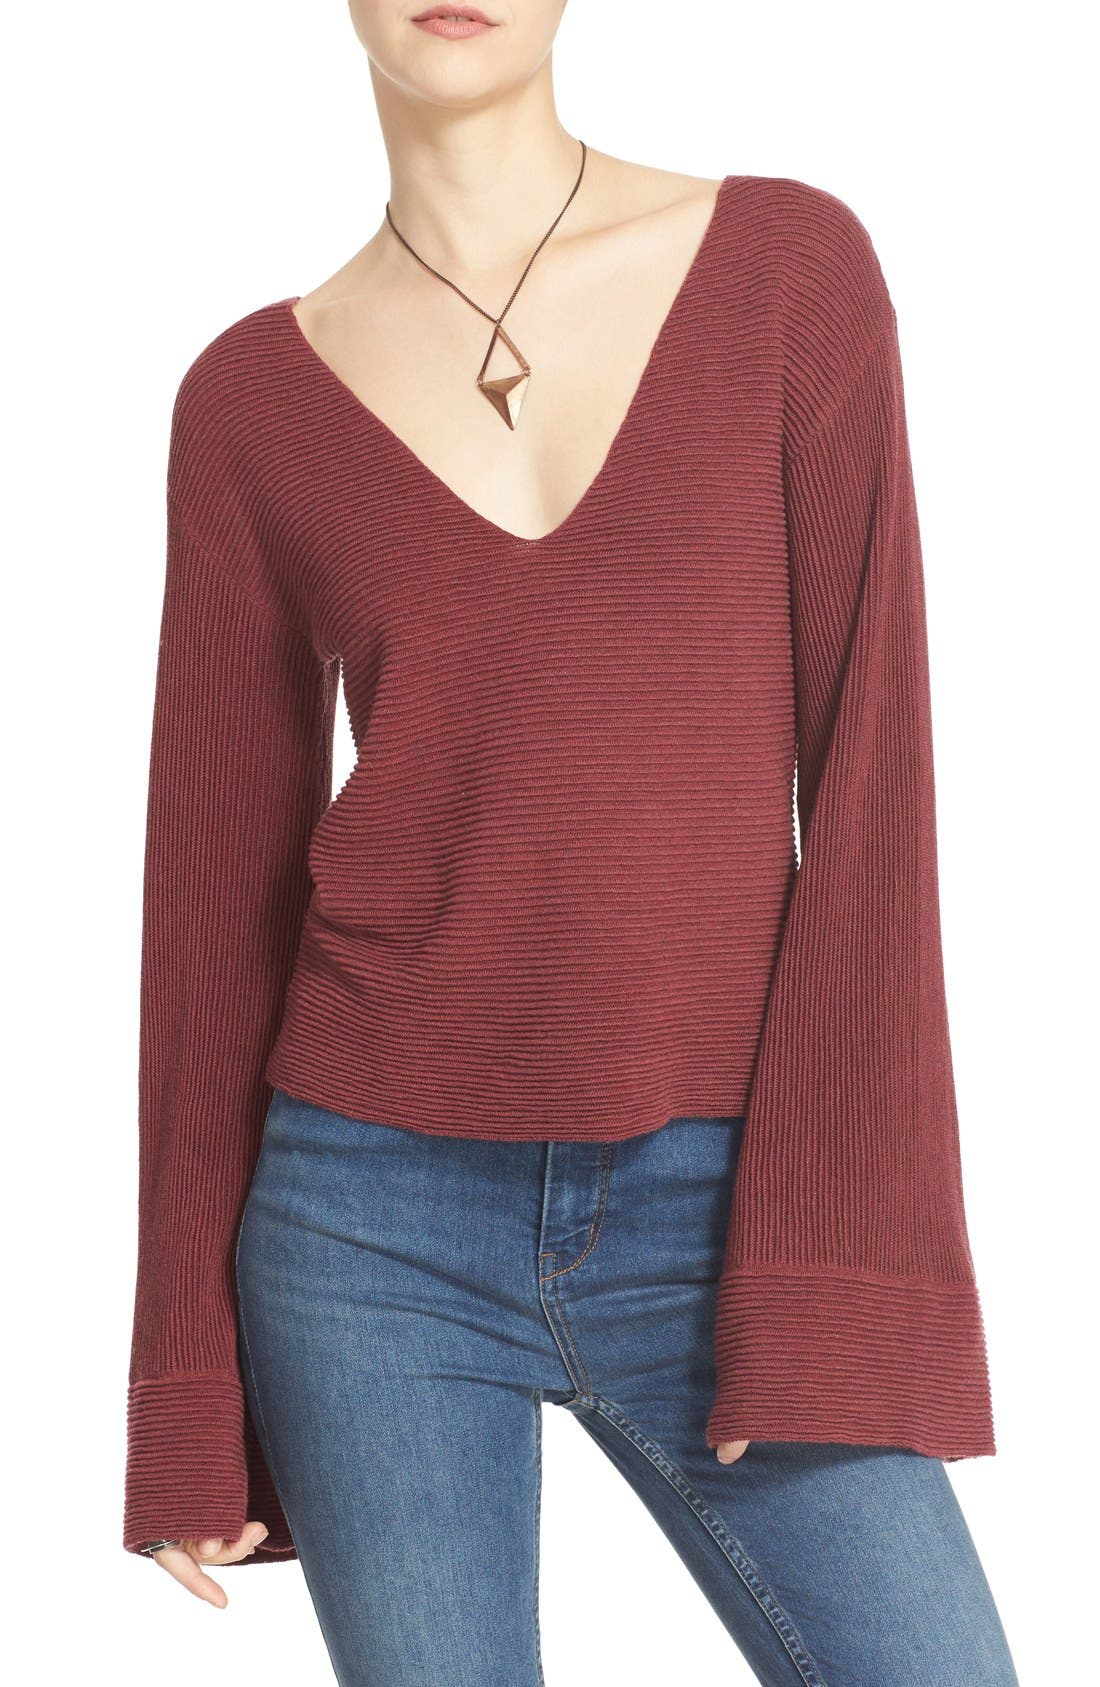 'Starman' Rib Knit Pullover,                             Main thumbnail 1, color,                             Wine